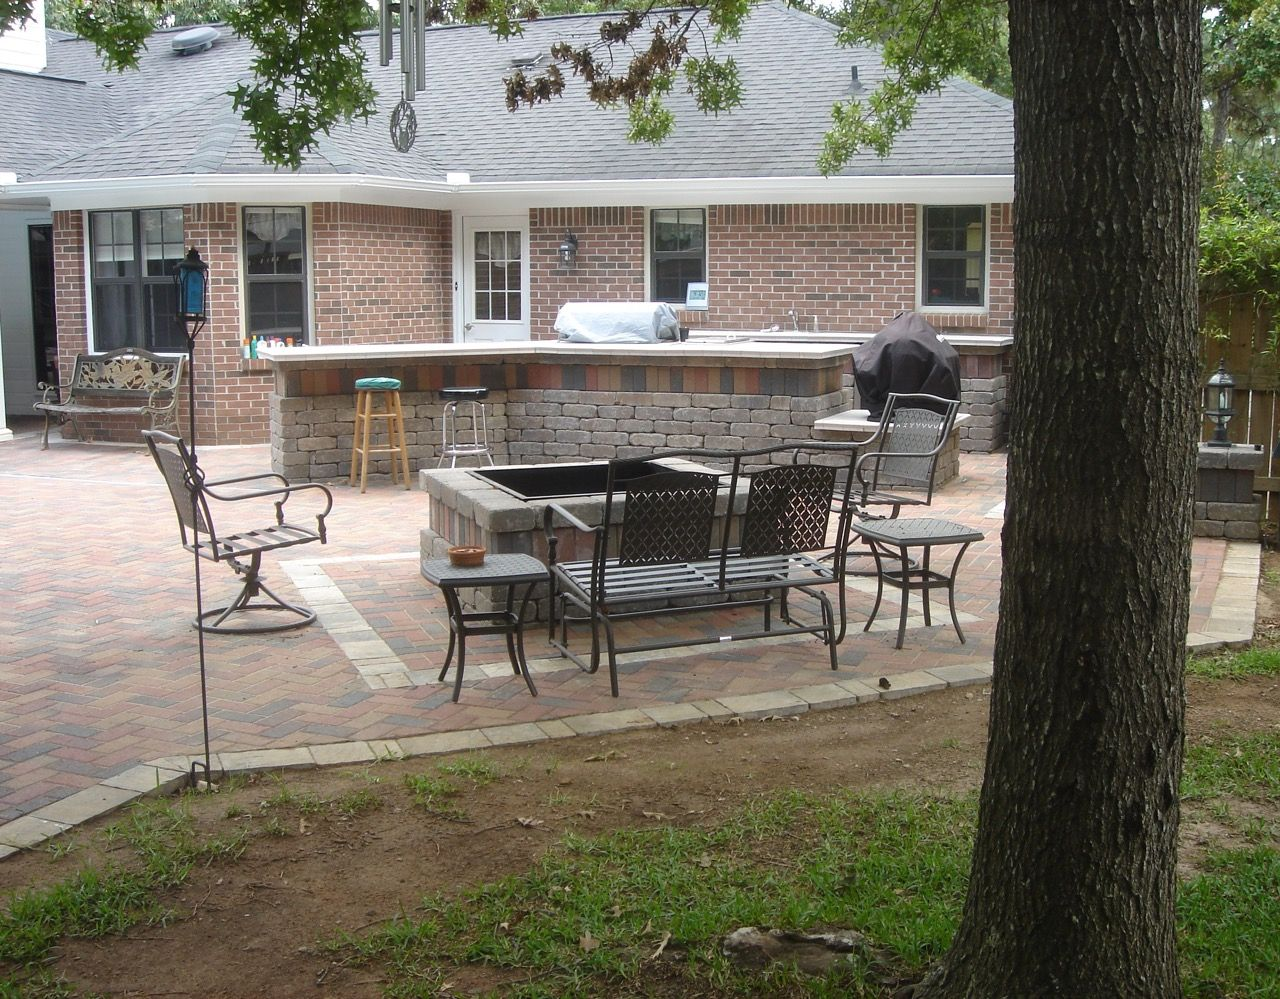 Hardscape Fire Pit And Outdoor Kitchen In Warner Robins Ga Patio Paver Patio Hardscape